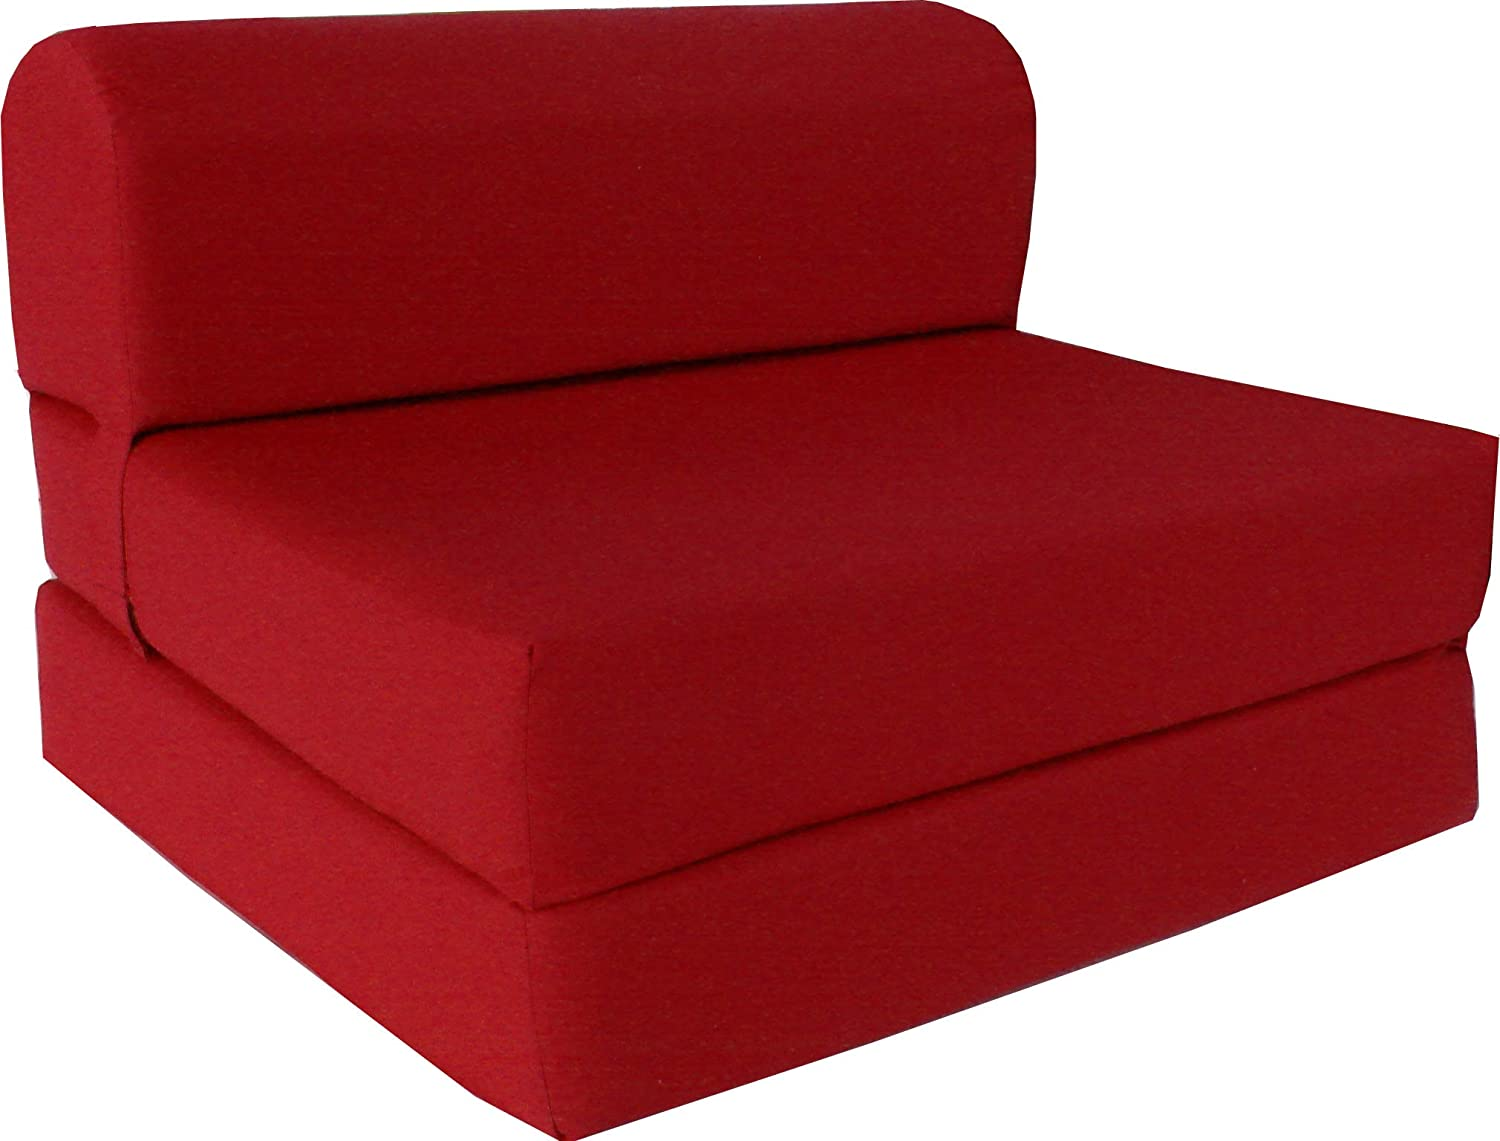 Amazoncom Dd Futon Furniture Red Sleeper Chair Folding Foam Bed